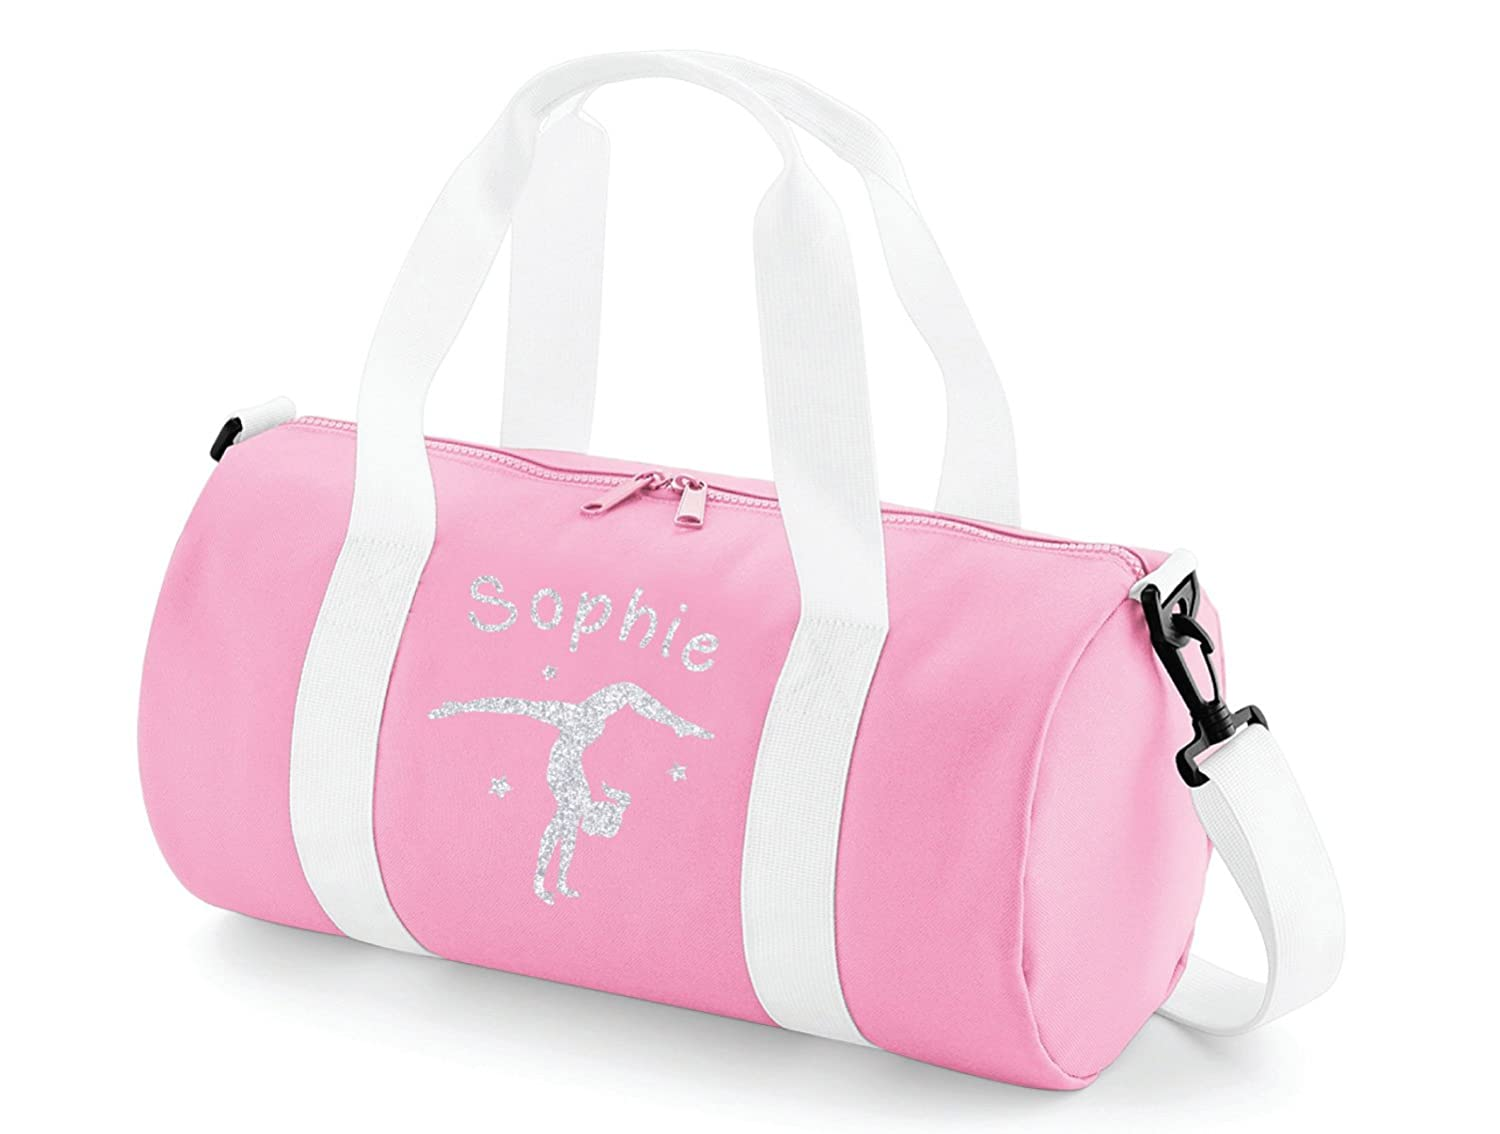 Absolutely Top Girls Personalised Gymnastics Handstand Glitter Barrel Bag